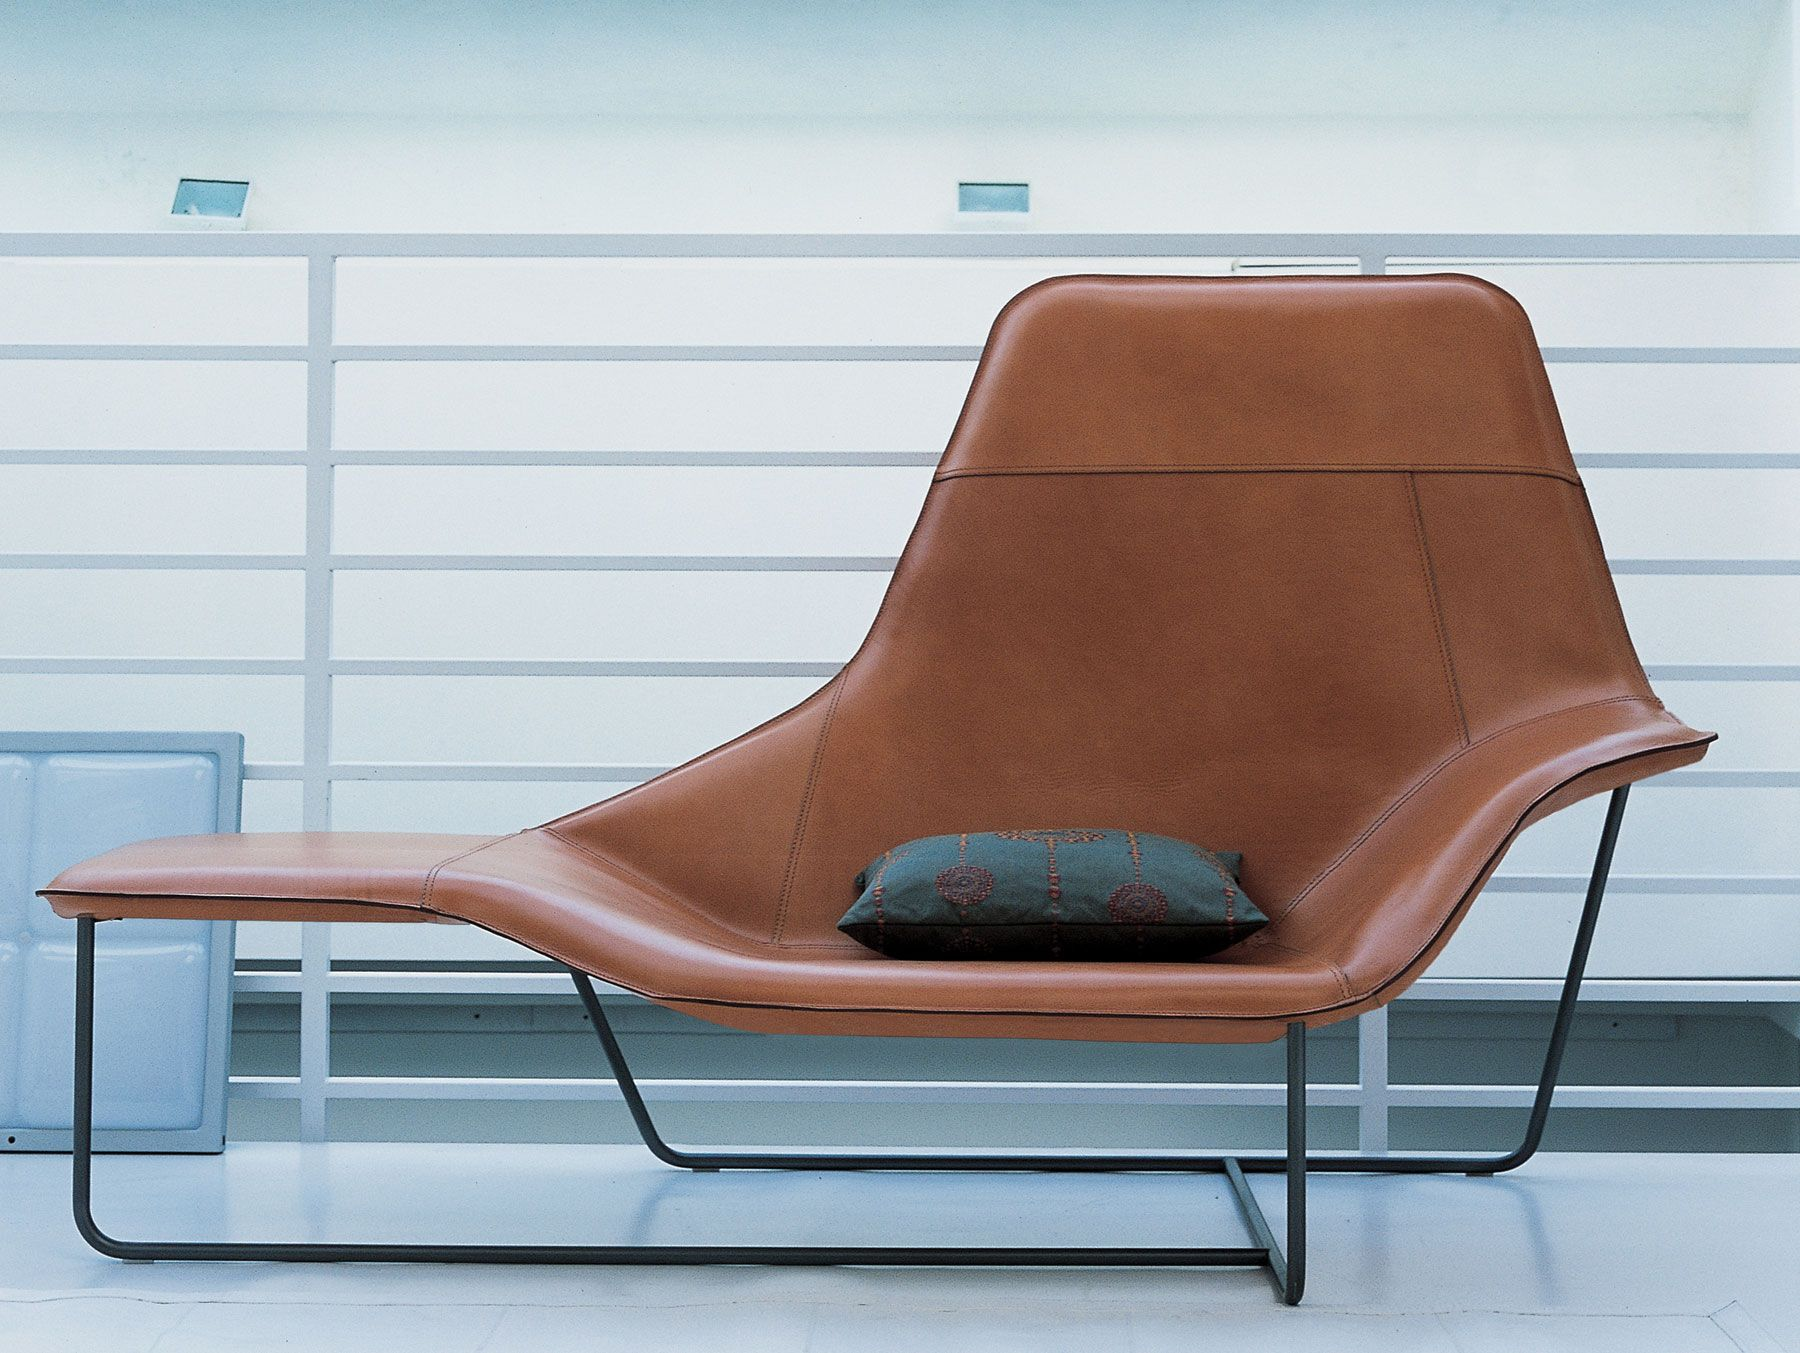 In 2019 Lama Lounge By Design Chair ZanottaVintage sBhroQdCtx